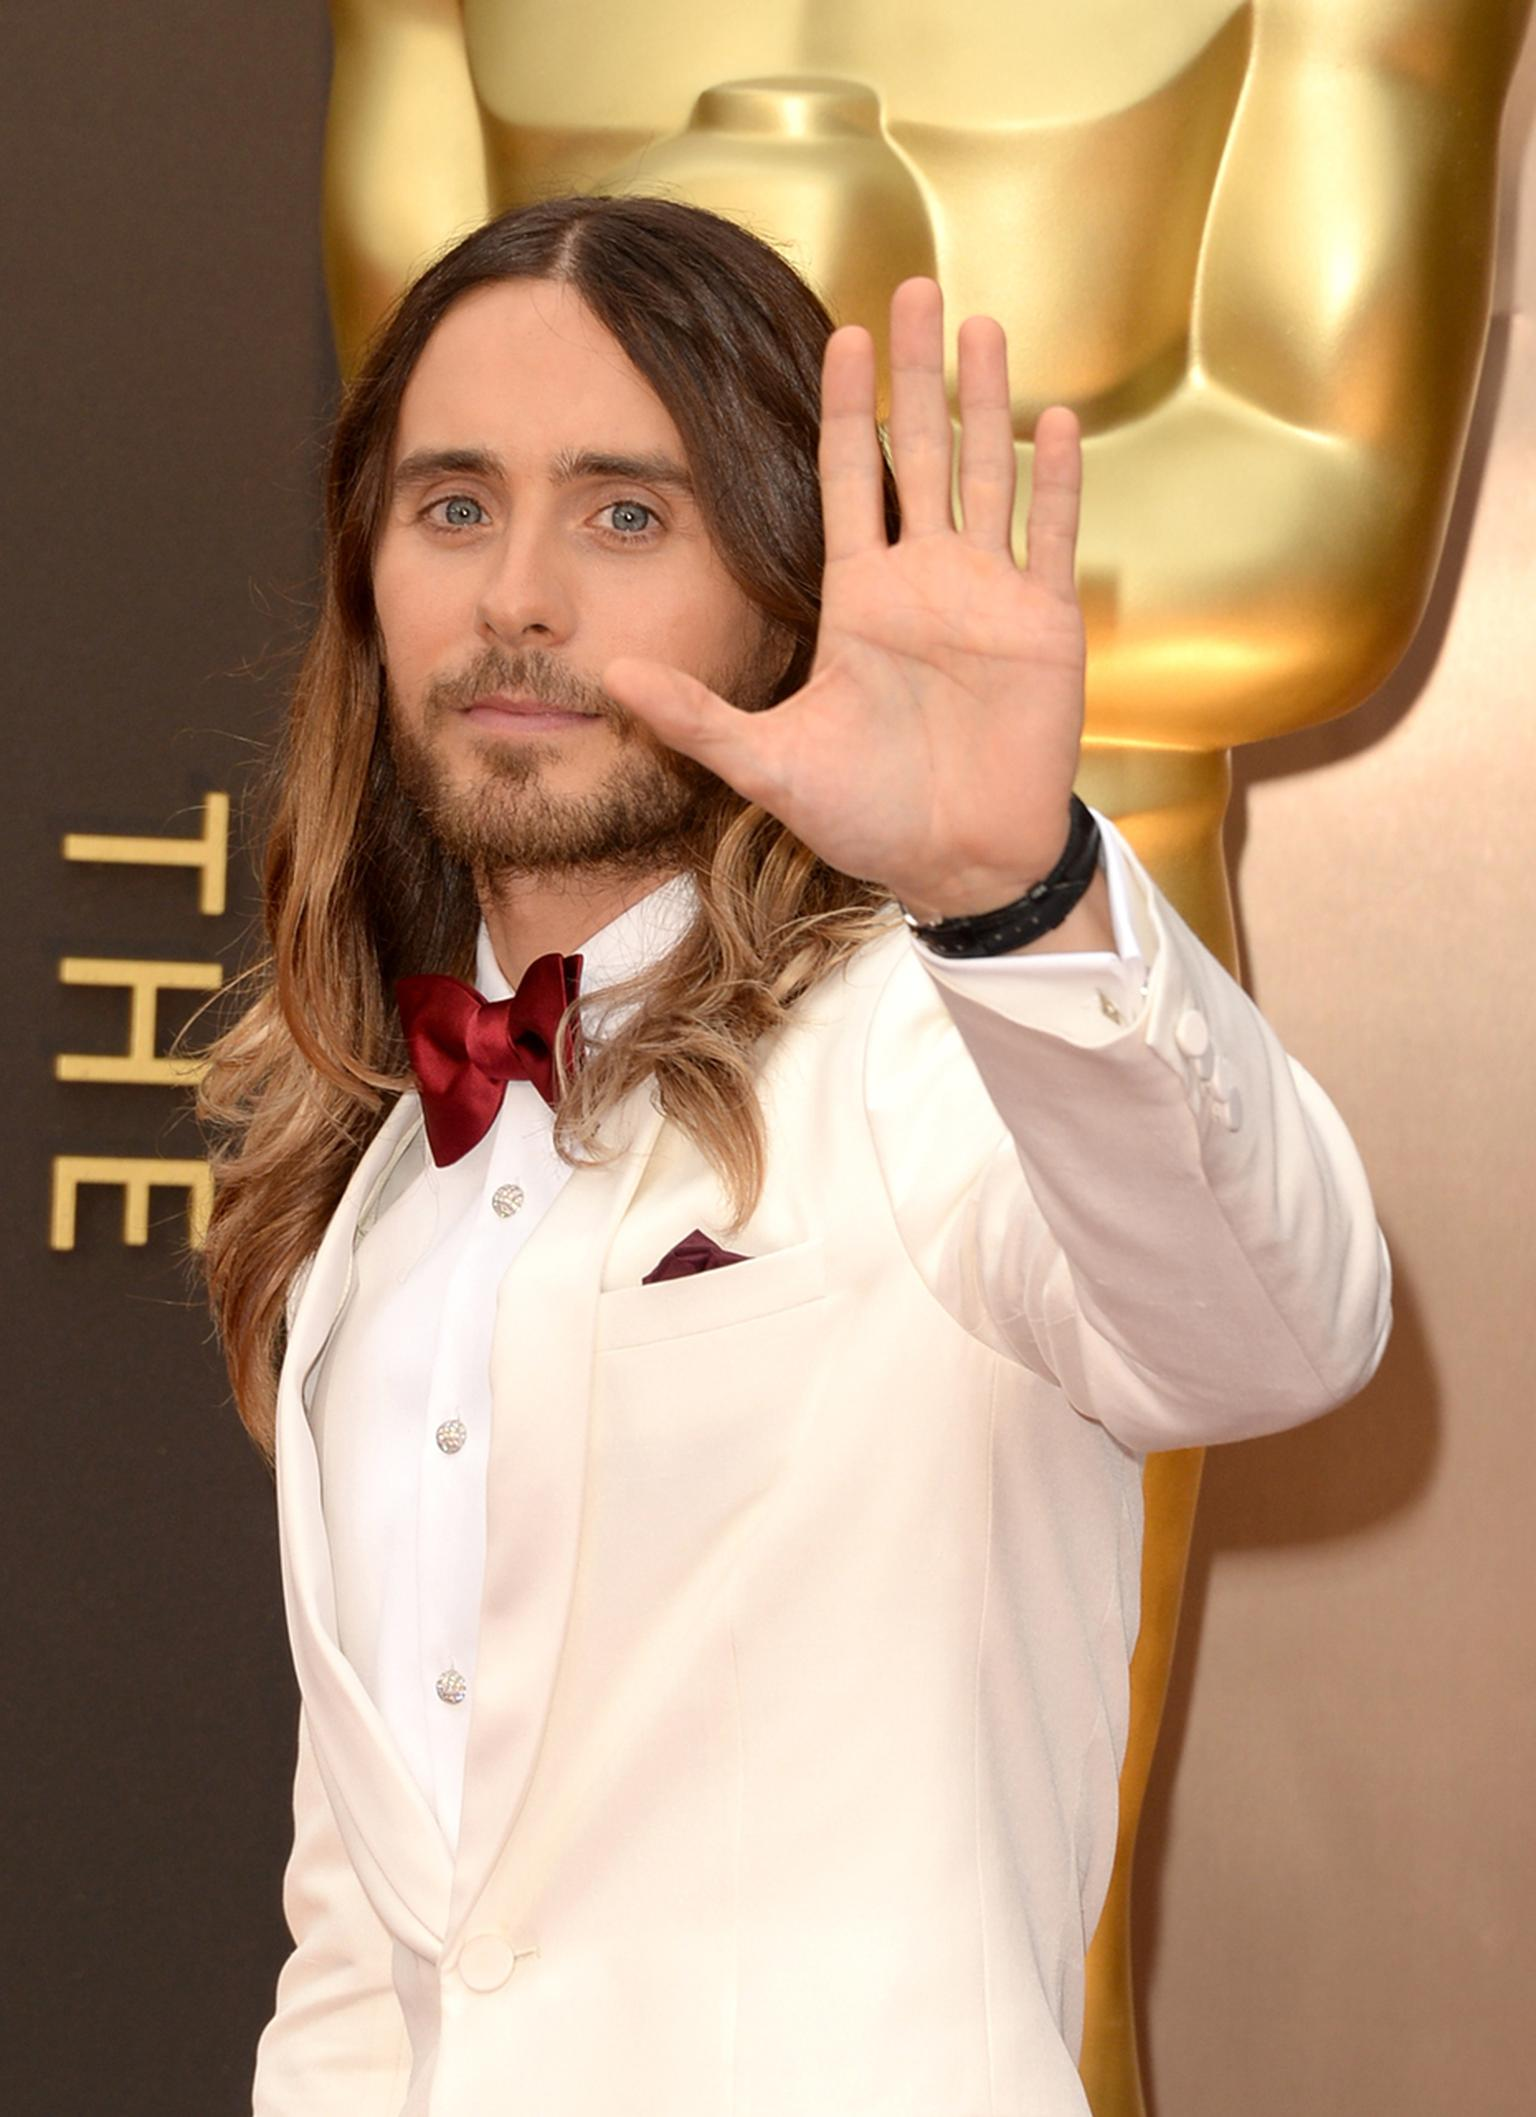 One of the best-dressed men on the night, Academy Award winner Jared Leto went for some subtle sparkle with a Neil Lane platinum and diamond dress set